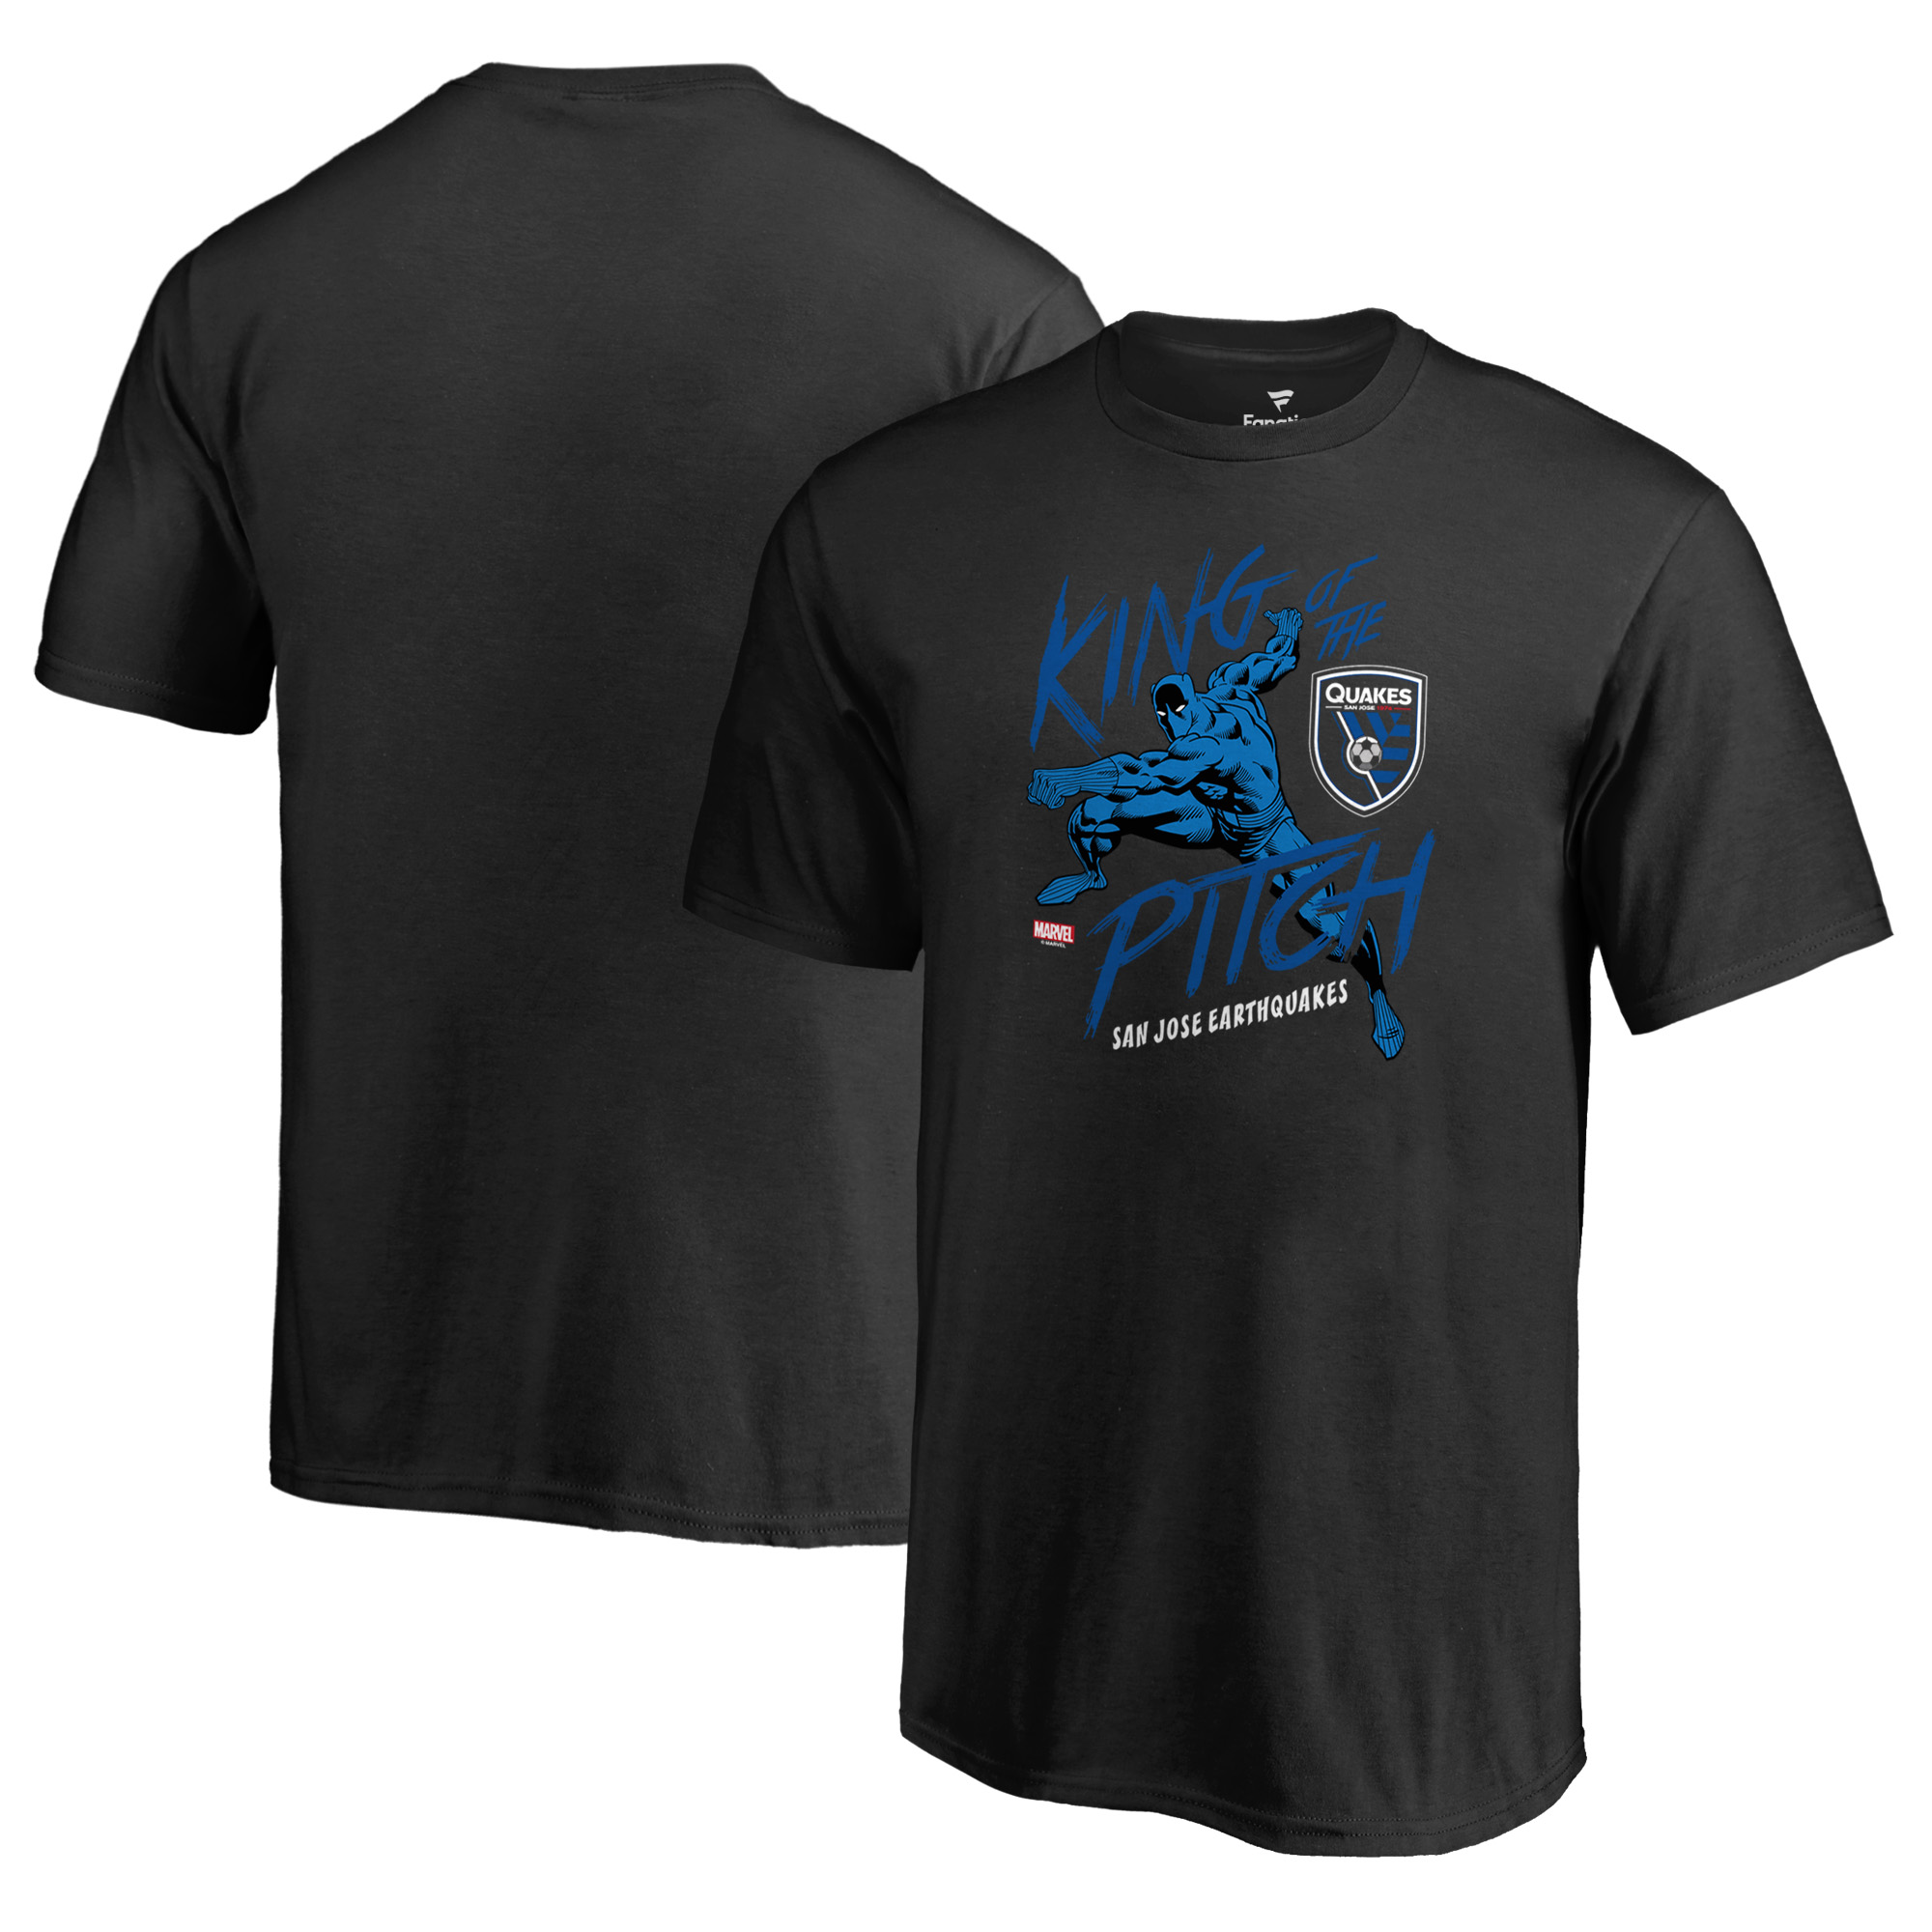 San Jose Earthquakes Fanatics Branded Youth MLS Marvel Black Panther King of the Pitch T-Shirt - Black